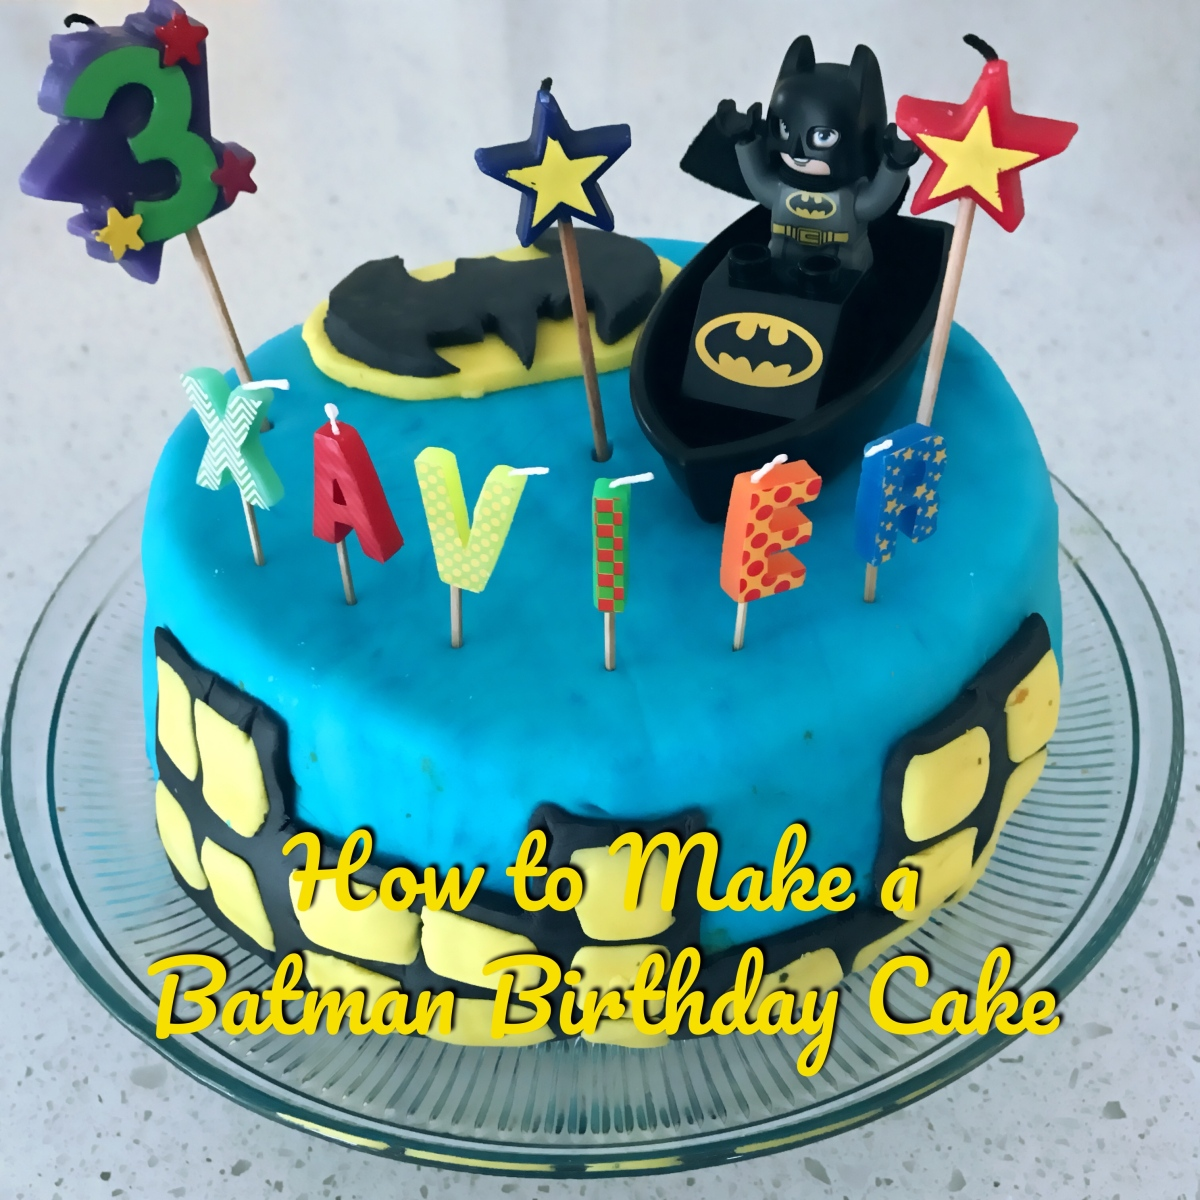 Birthday Cake With Photo Upload Free : How To Make a Batman Birthday Cake   Sharing Lifestyles